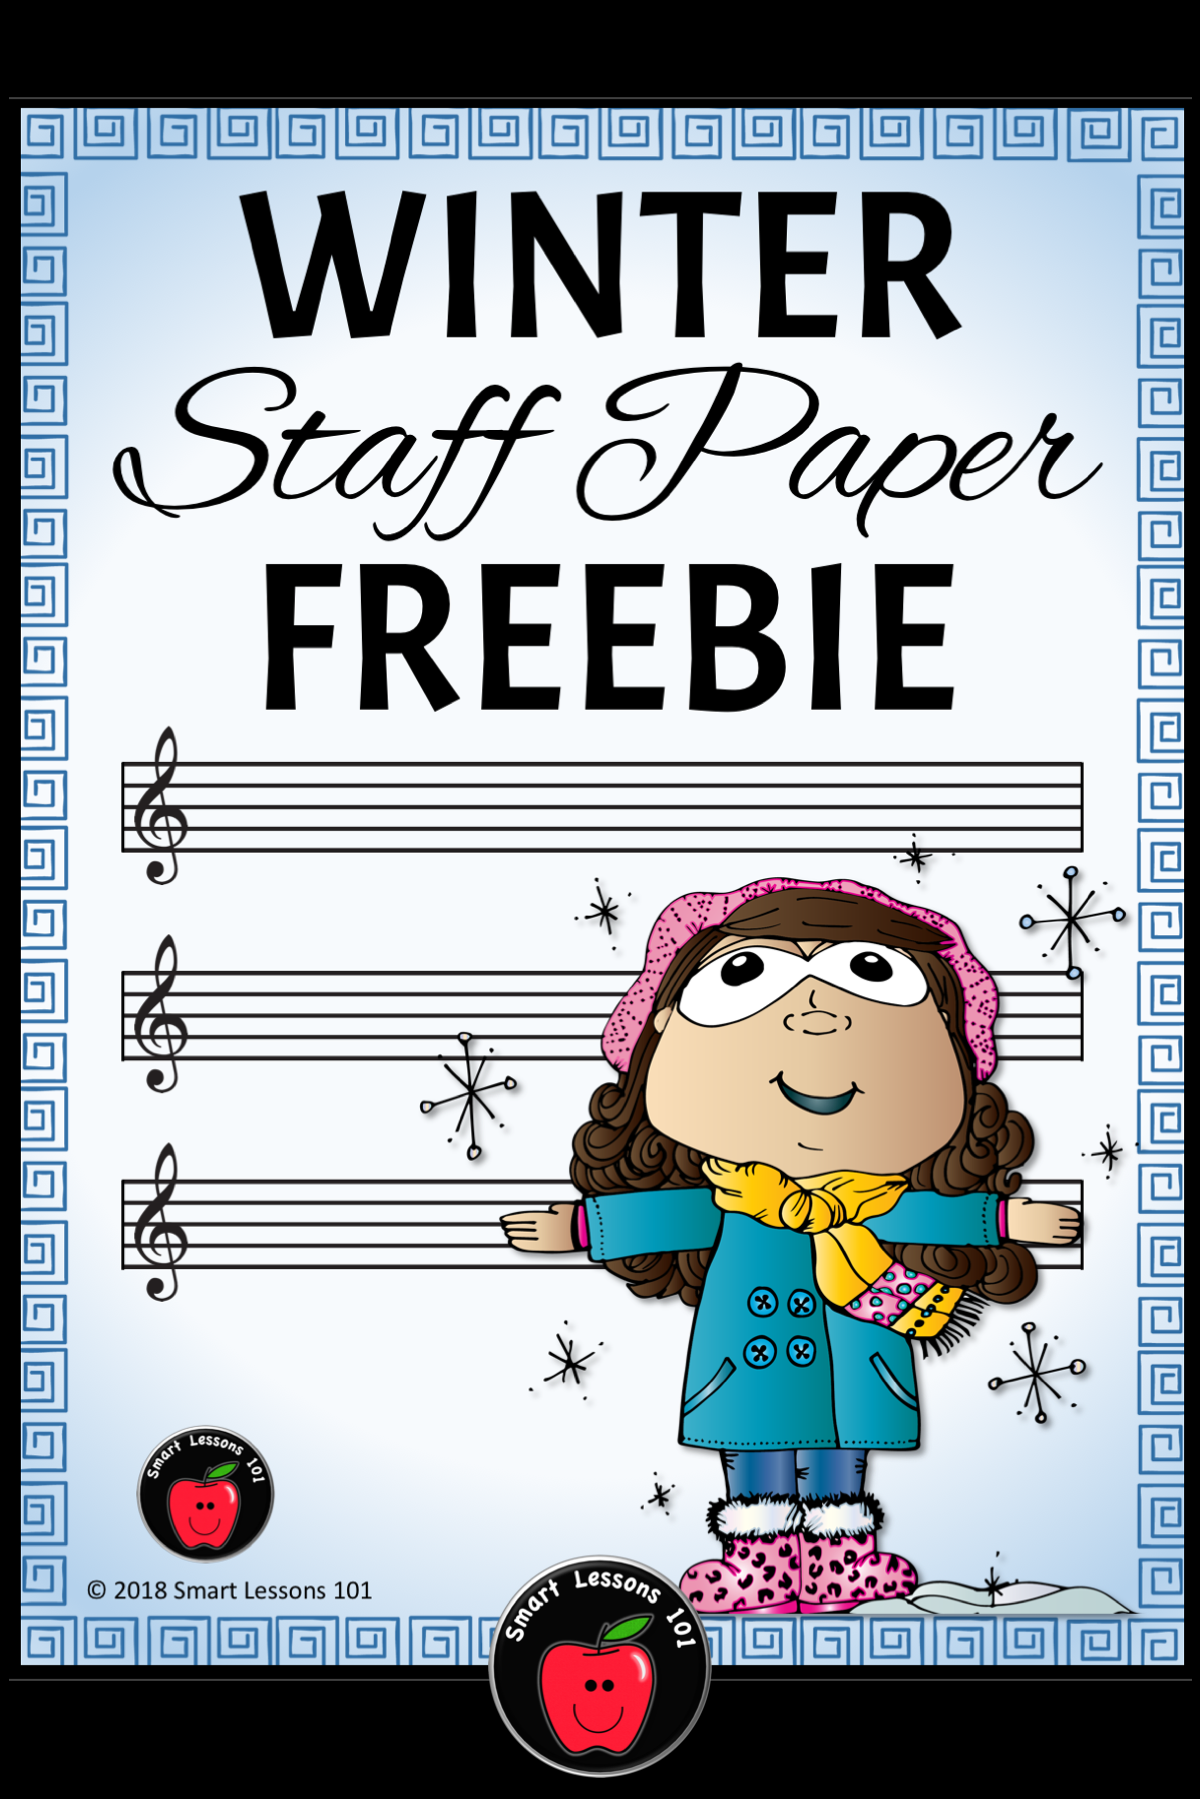 Winter Music Worksheets Winter Staff Paper Free Treble